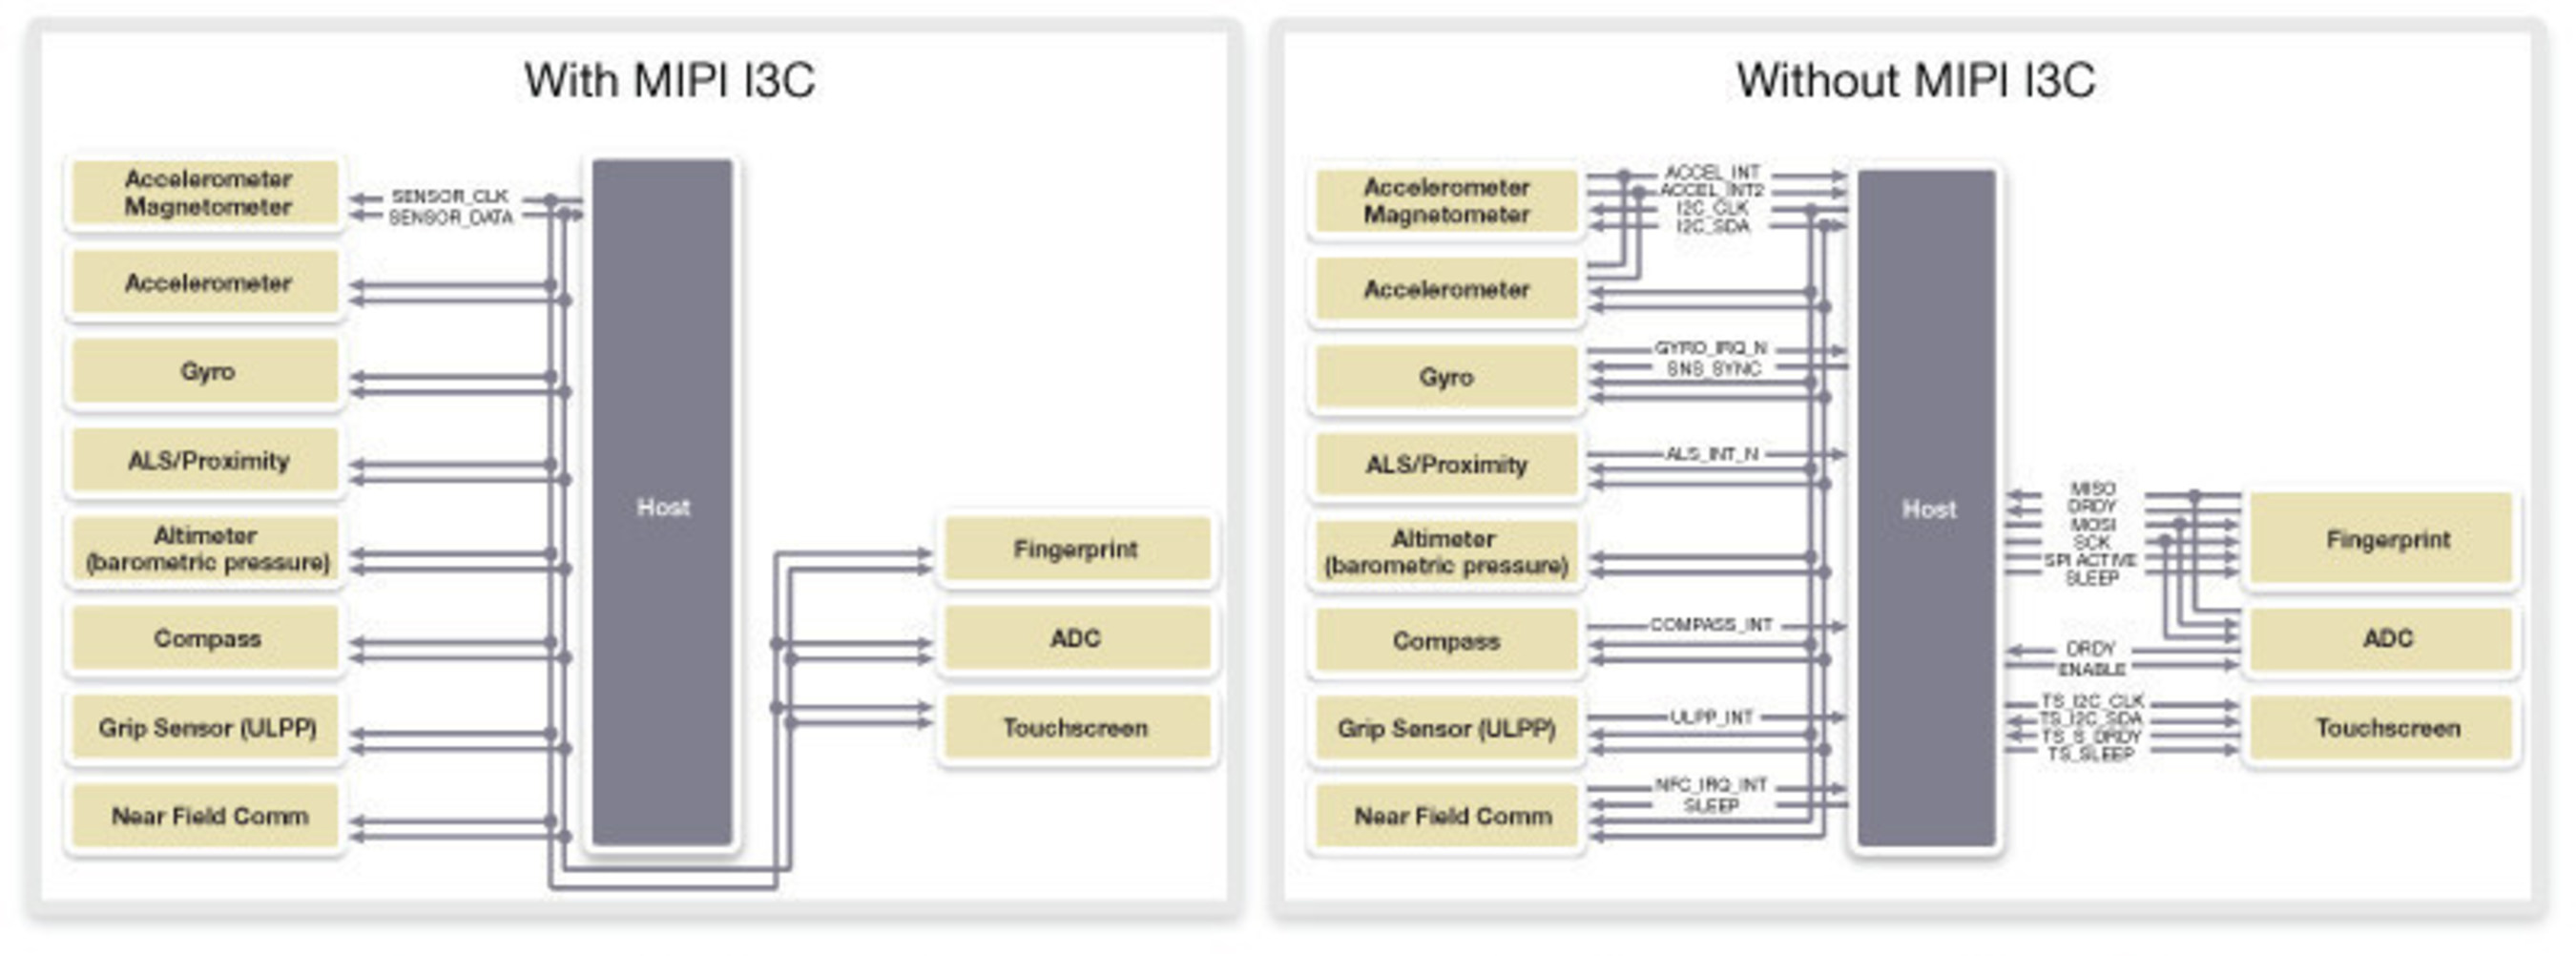 Examples of sensor connectivity with and without MIPI I3C. Images courtesy of MIPI Alliance.